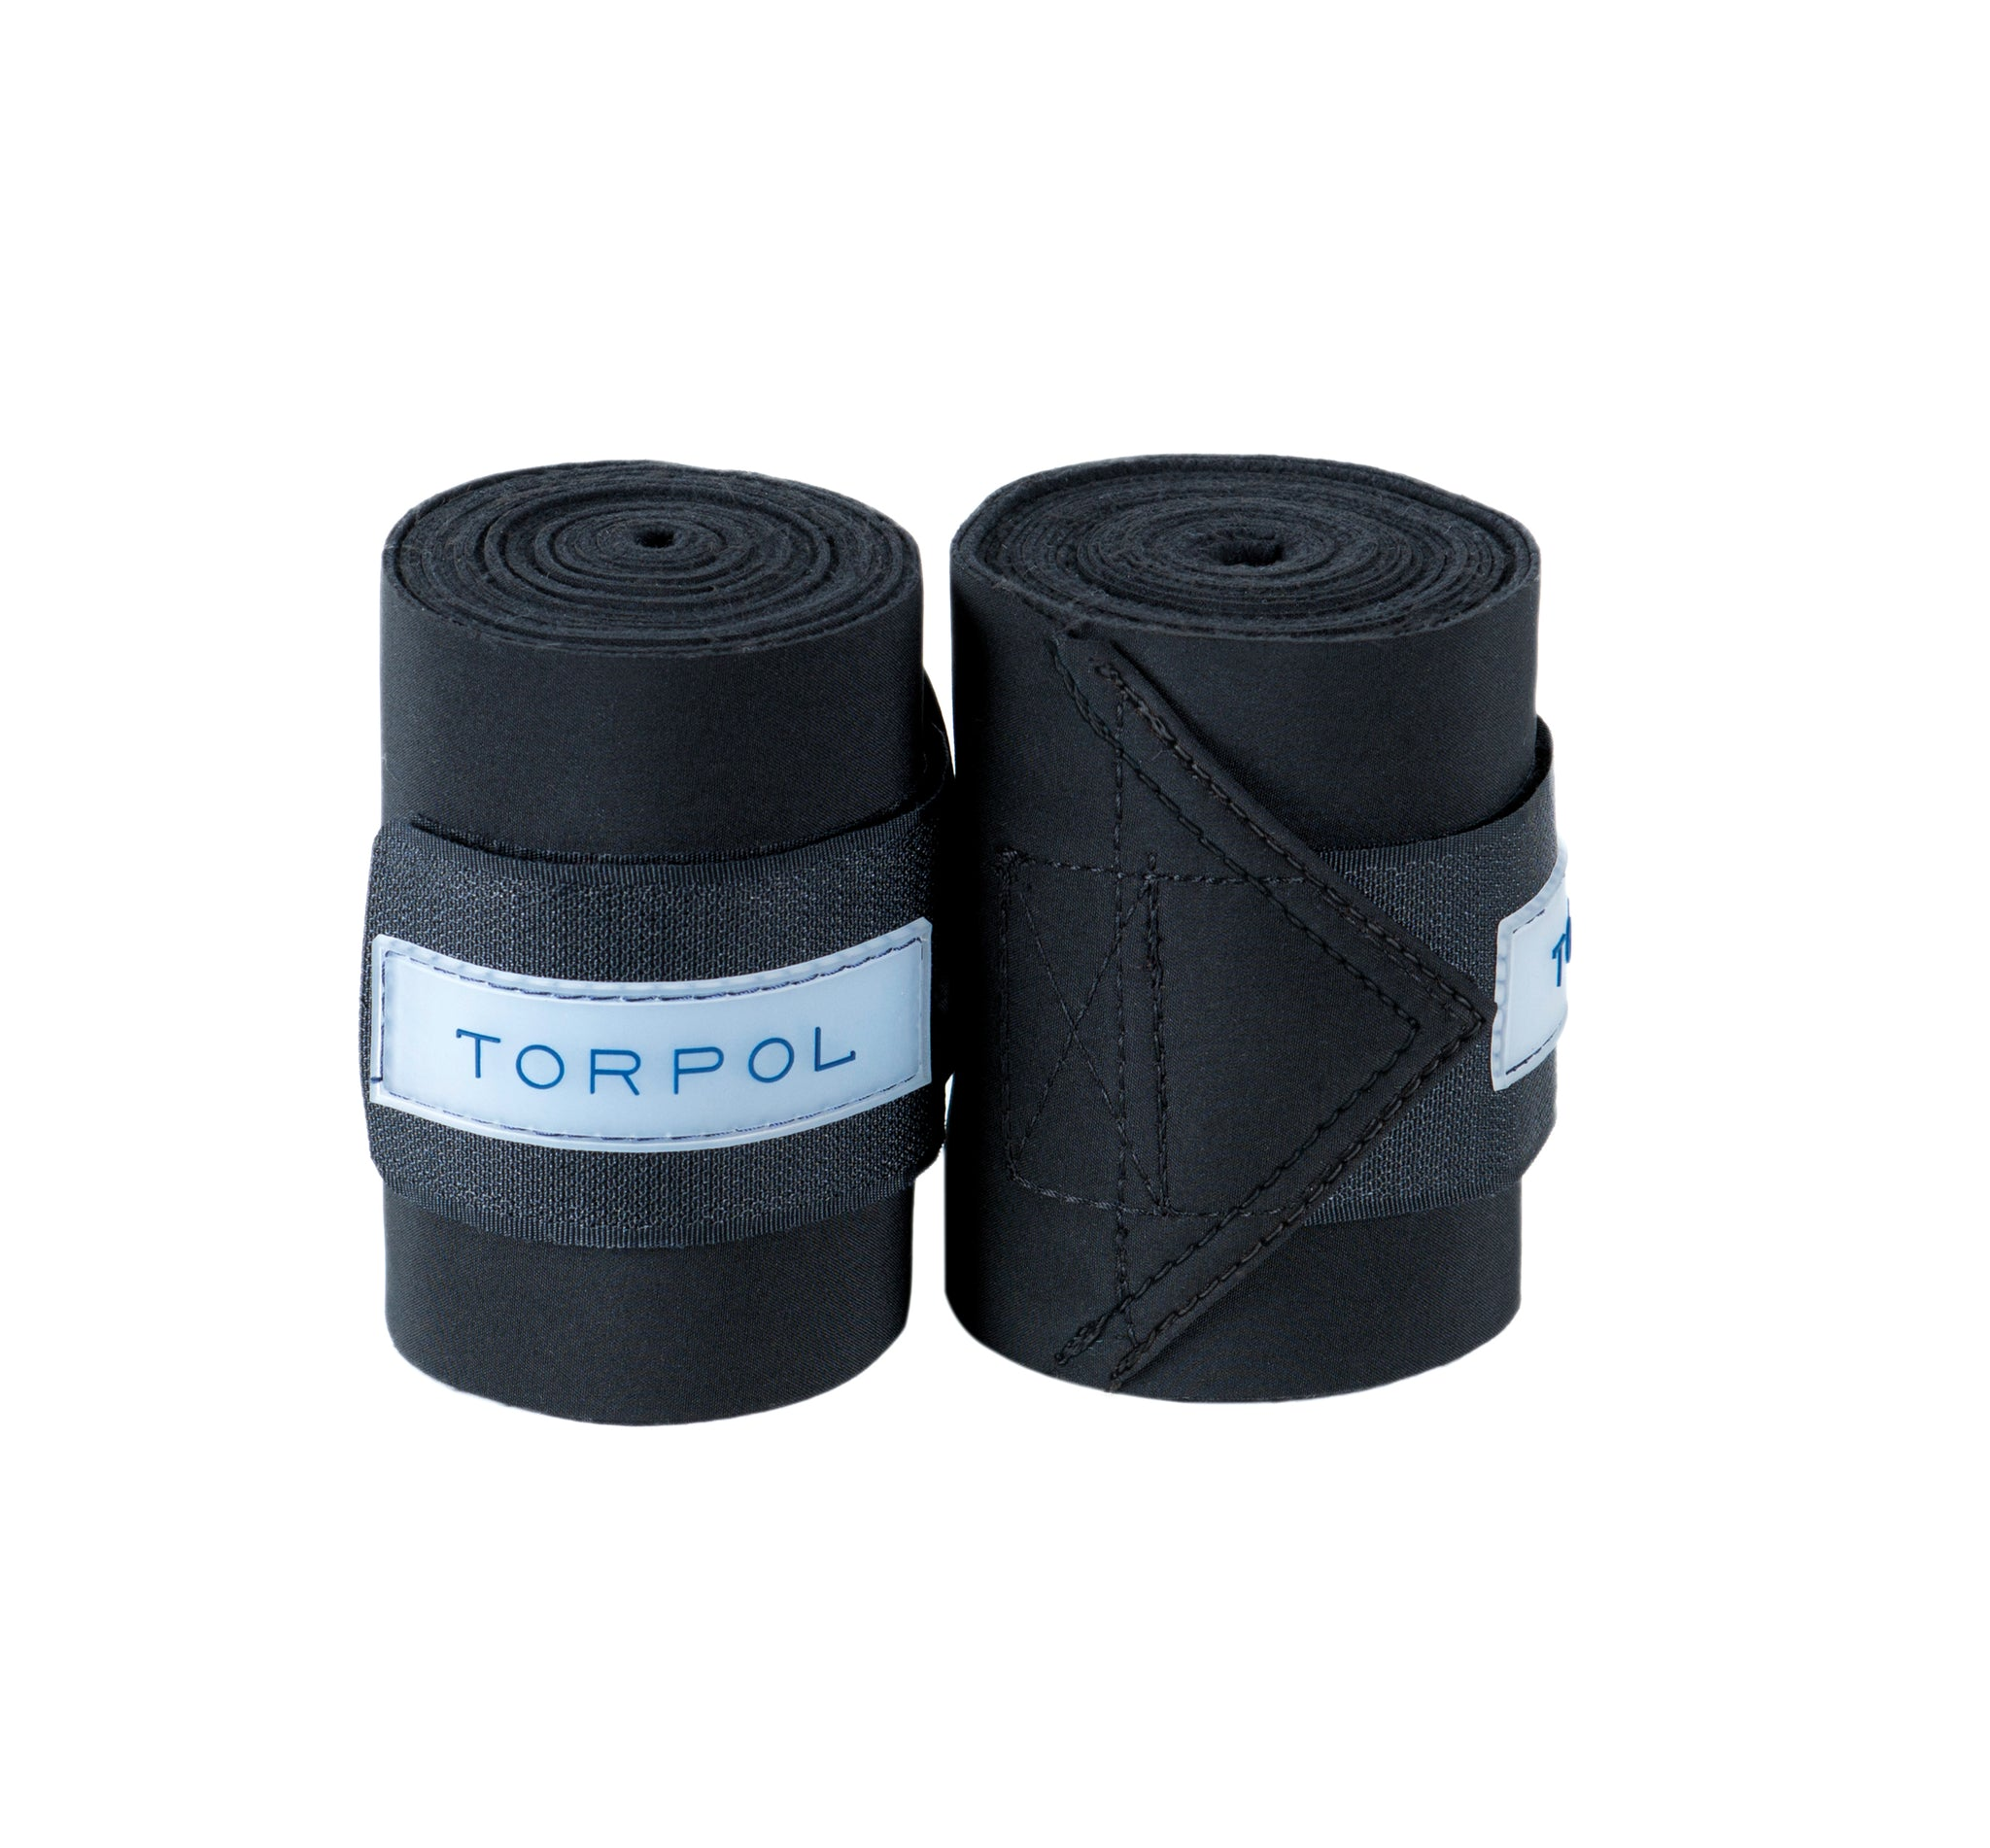 Torpol Soft shell bandages -  Pack of 2